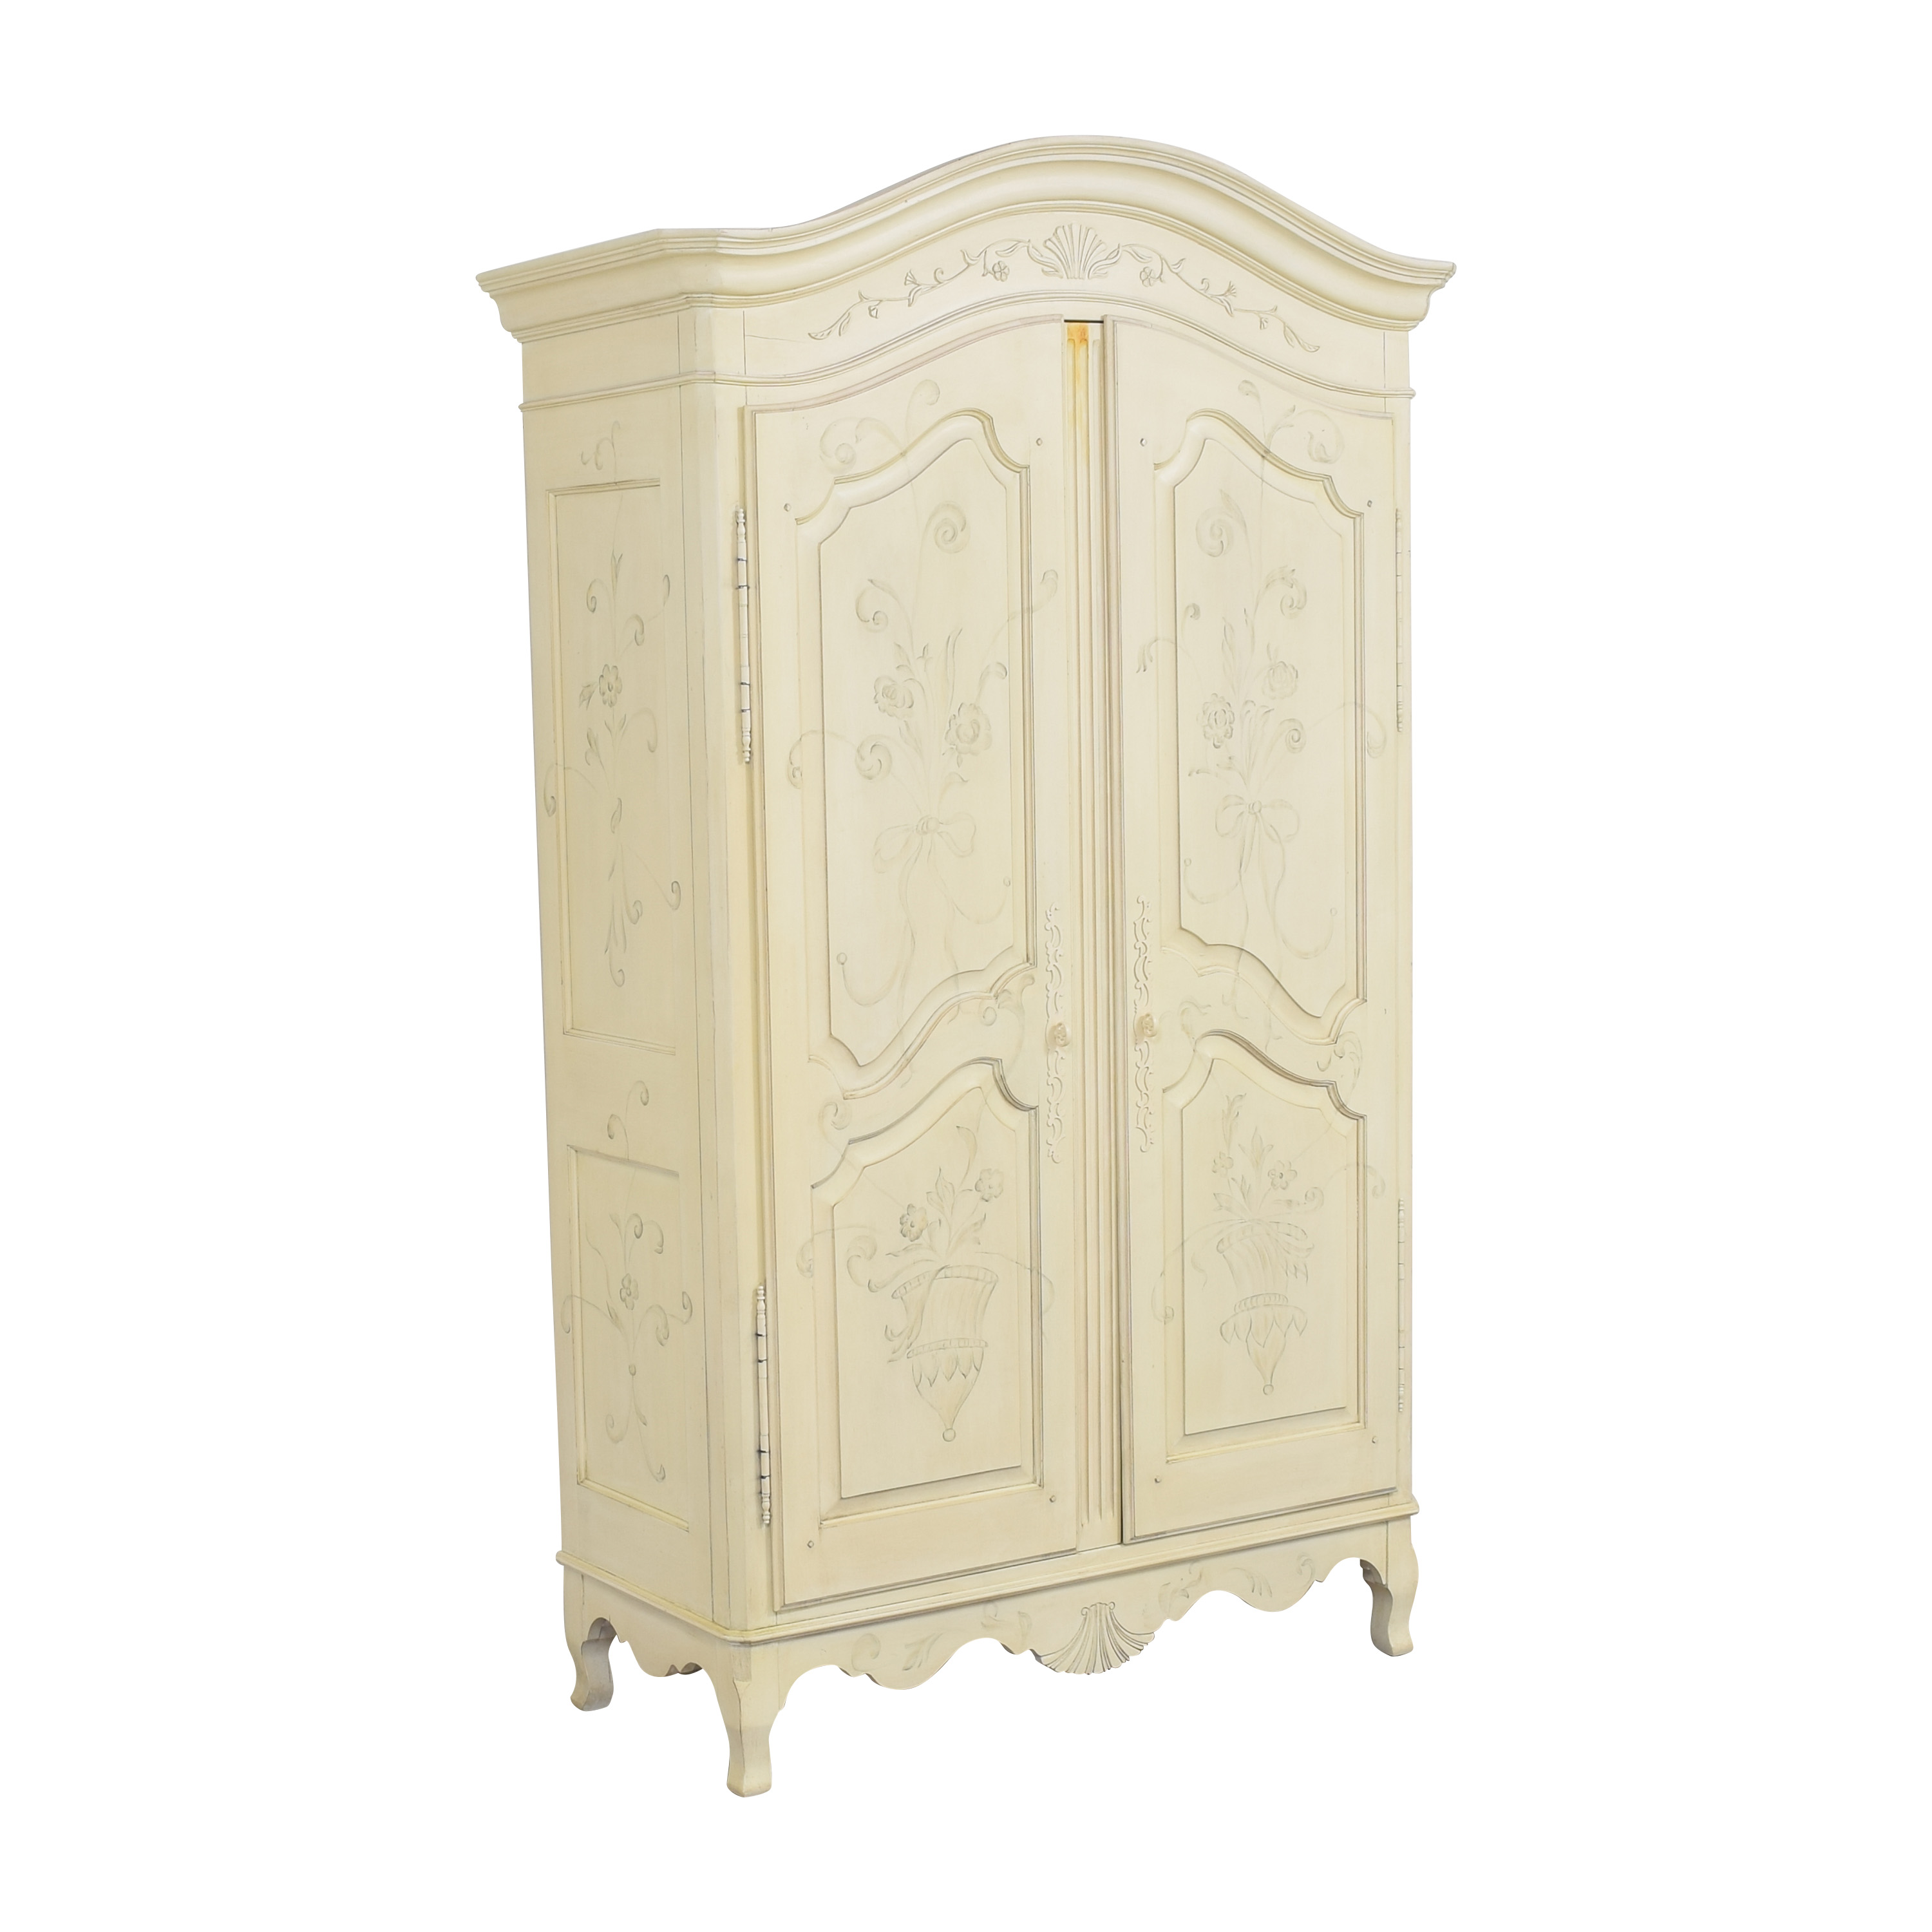 Ethan Allen Ethan Allen Decorated Country French Armoire pa